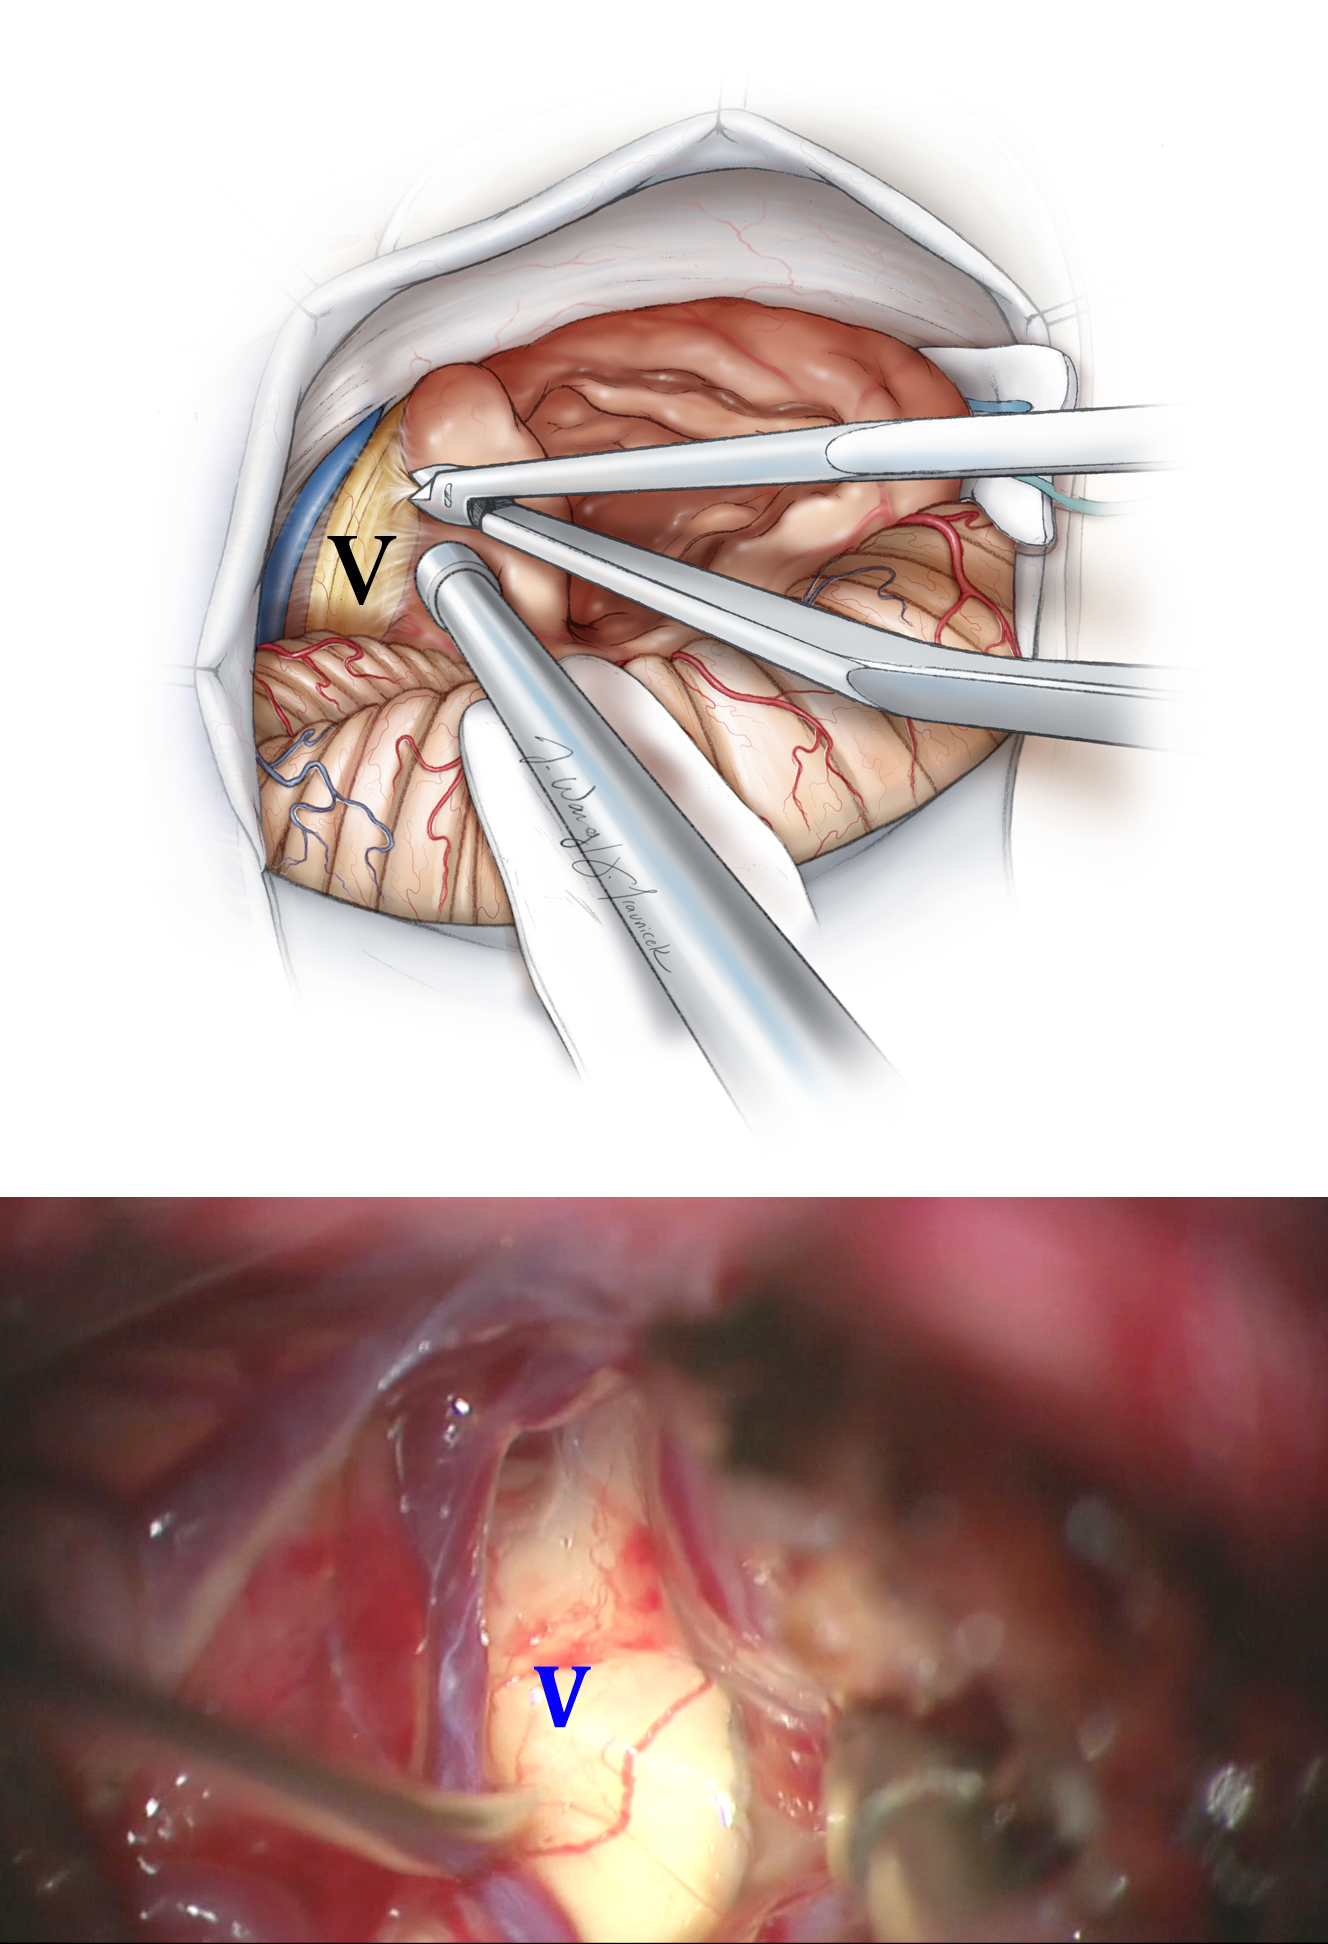 Figure 11: Dissection of the tumor away from CN V is shown. The superior petrosal vein is protected if possible. The lower cranial nerves are covered with a small piece of cottonoid. The lower intraoperative photo shows the root entry zone of CN V.